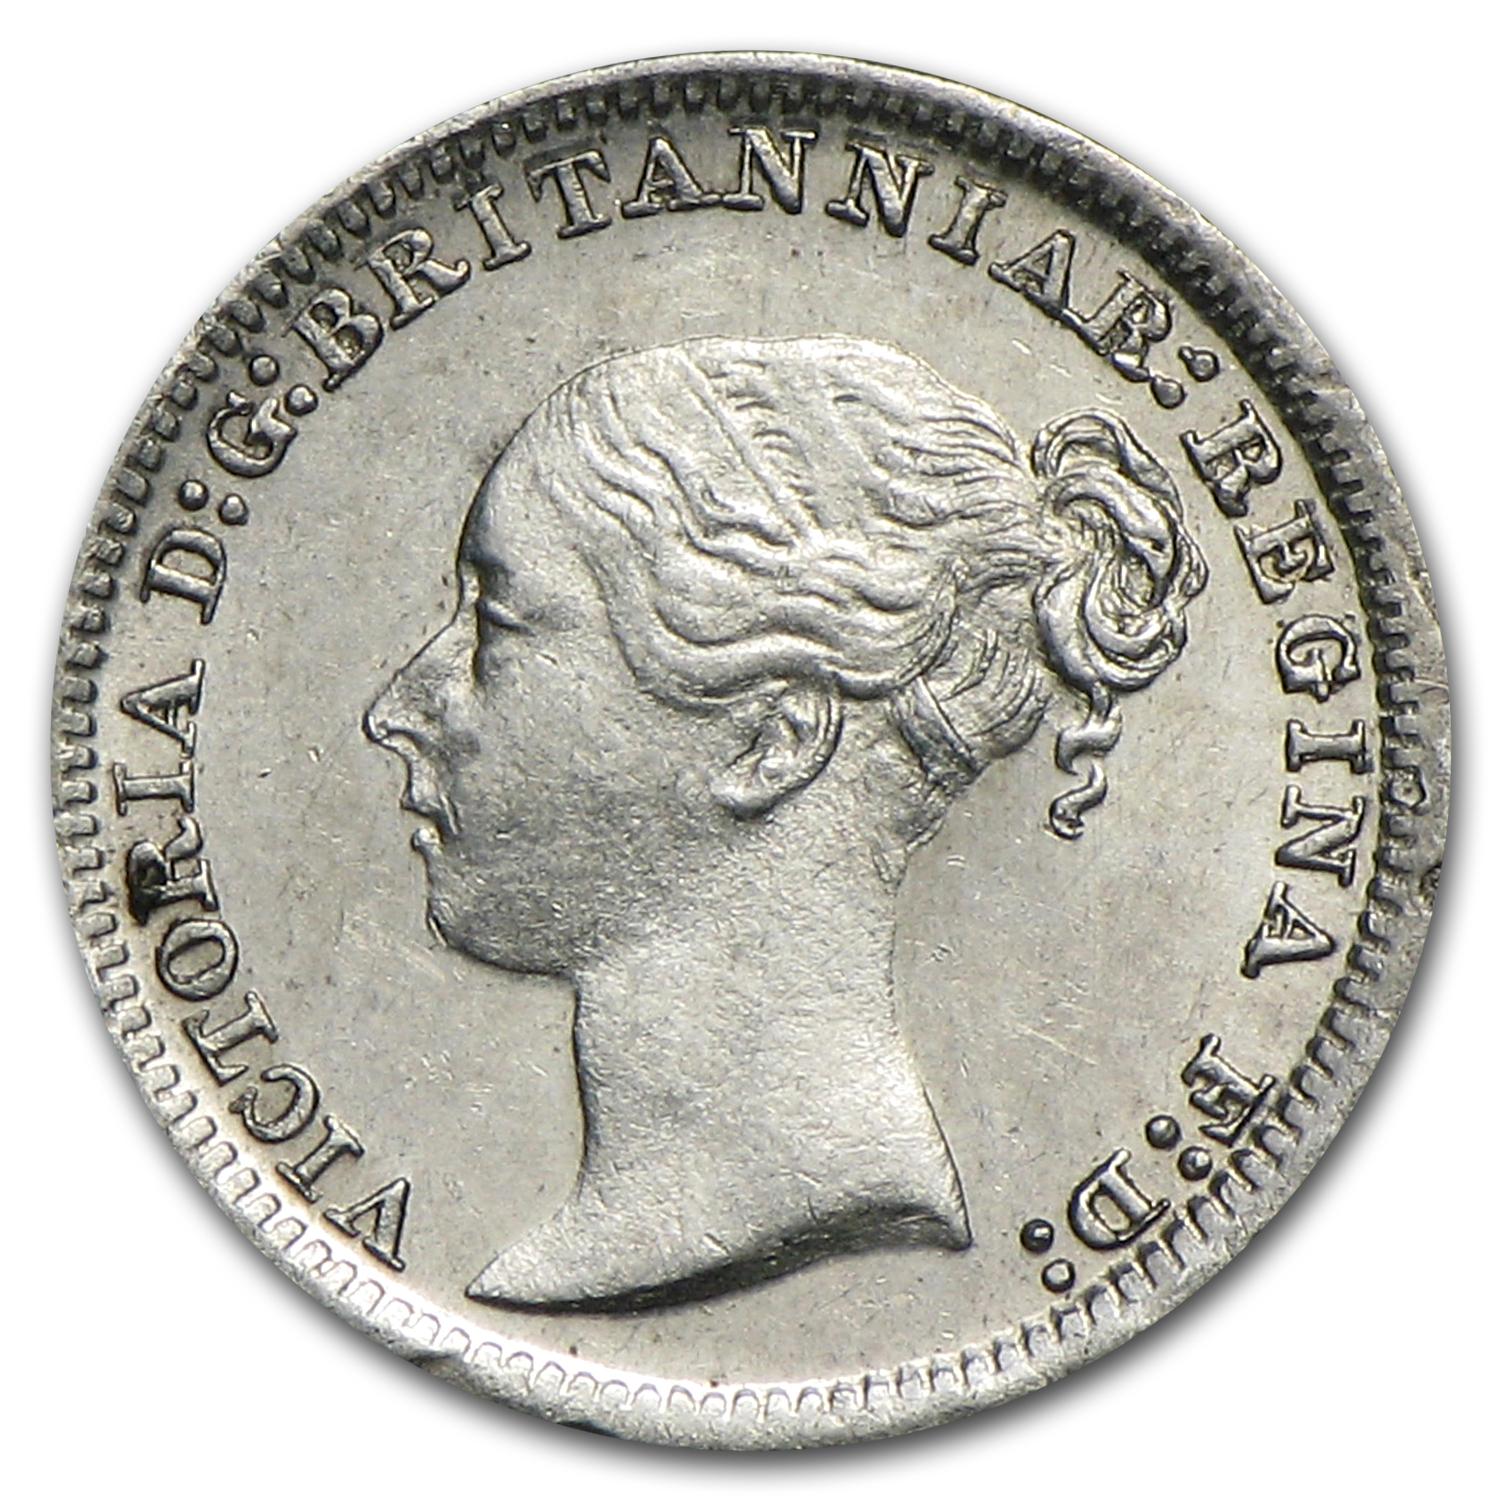 1883 Great Britain Silver 1 Pence BU